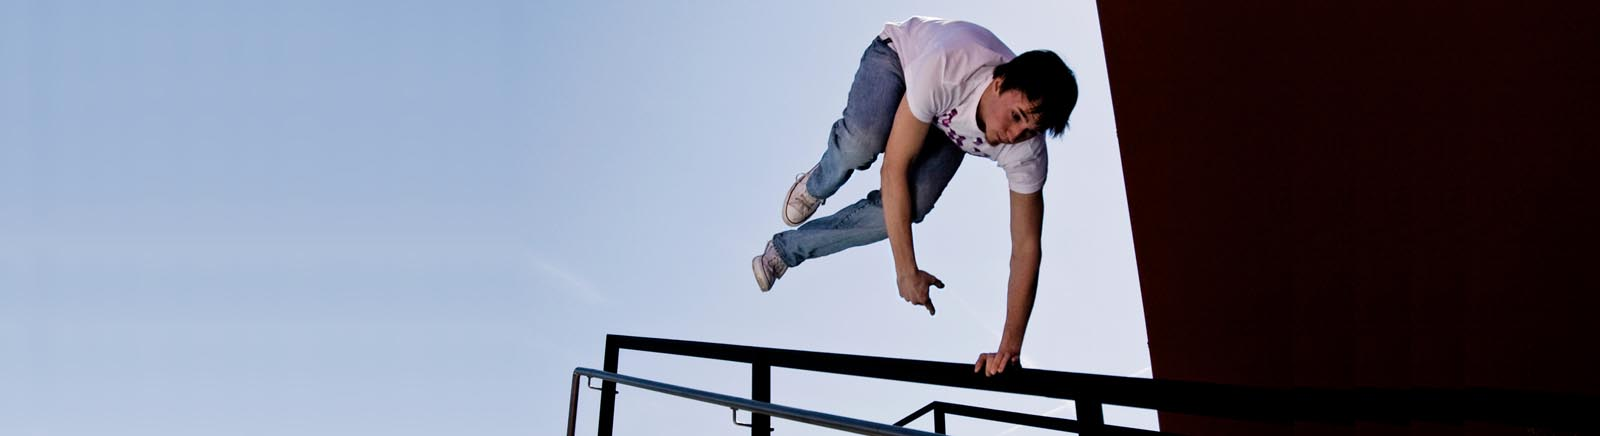 Parkour post image